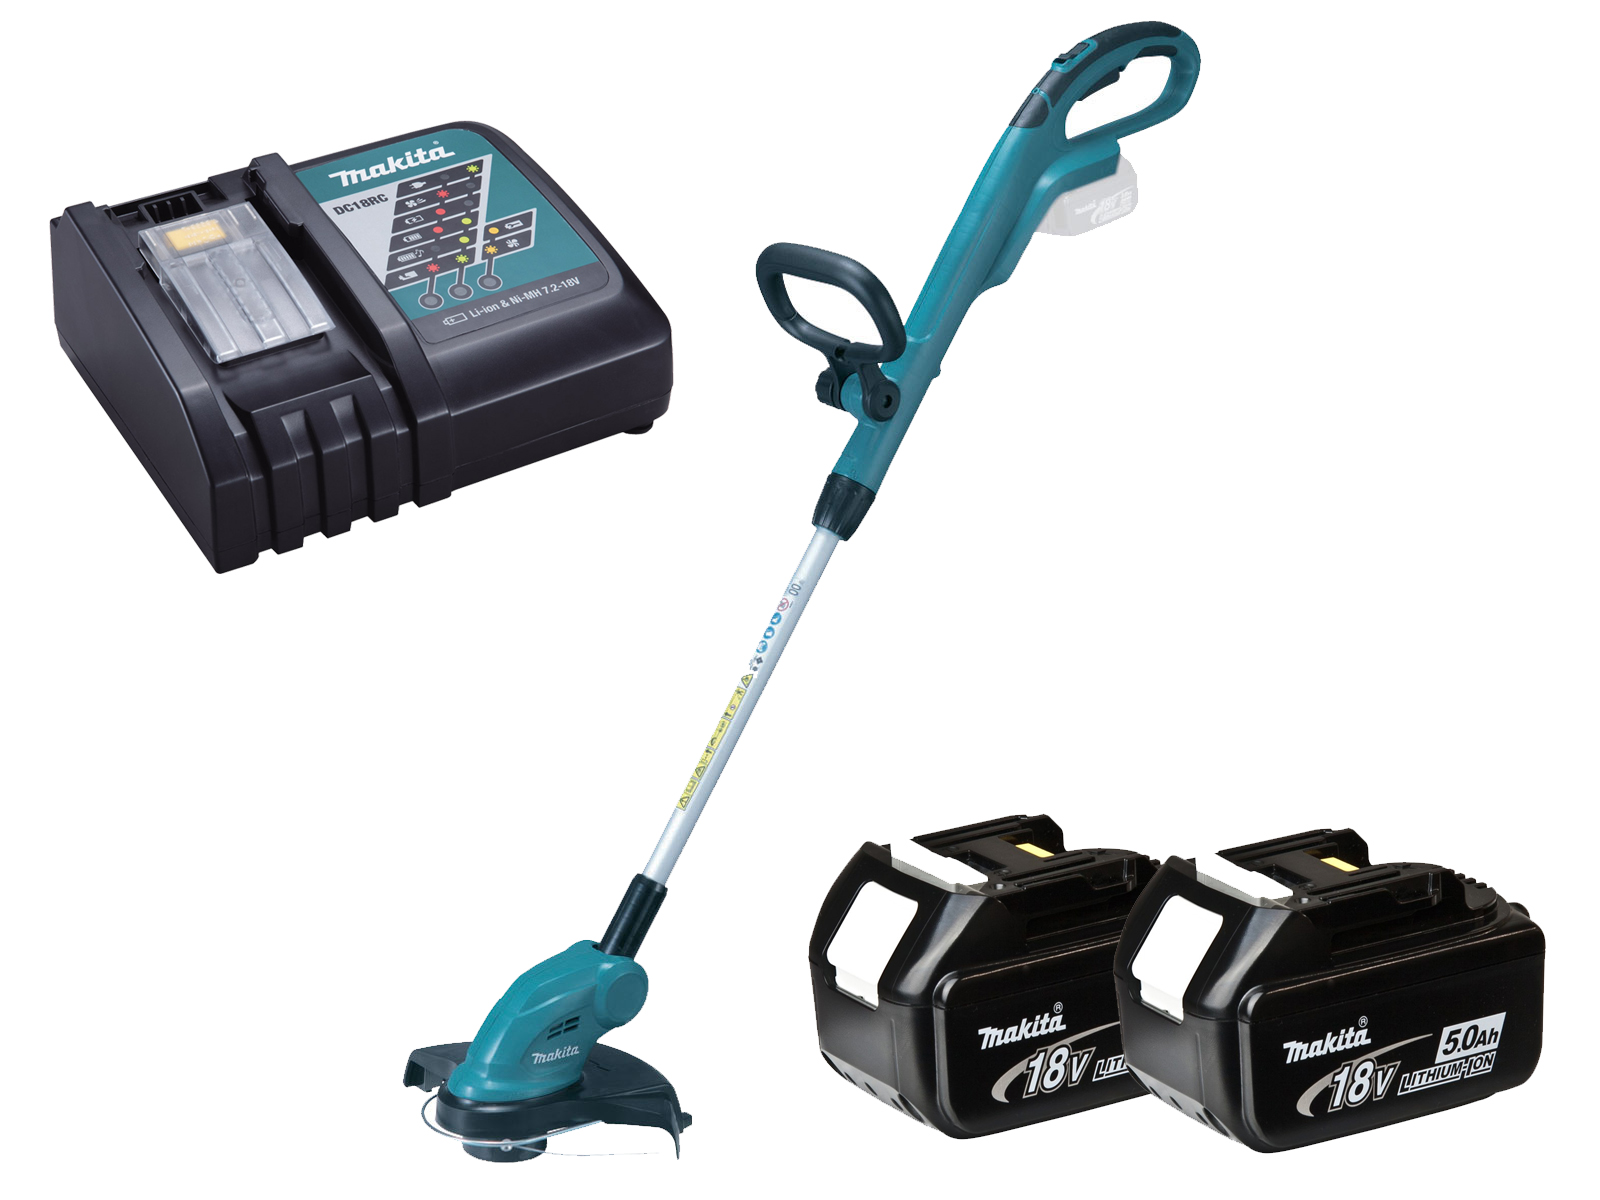 Makita 18V Brushed LXT Line Trimmer - DUR181Z - 5.0Ah Pack